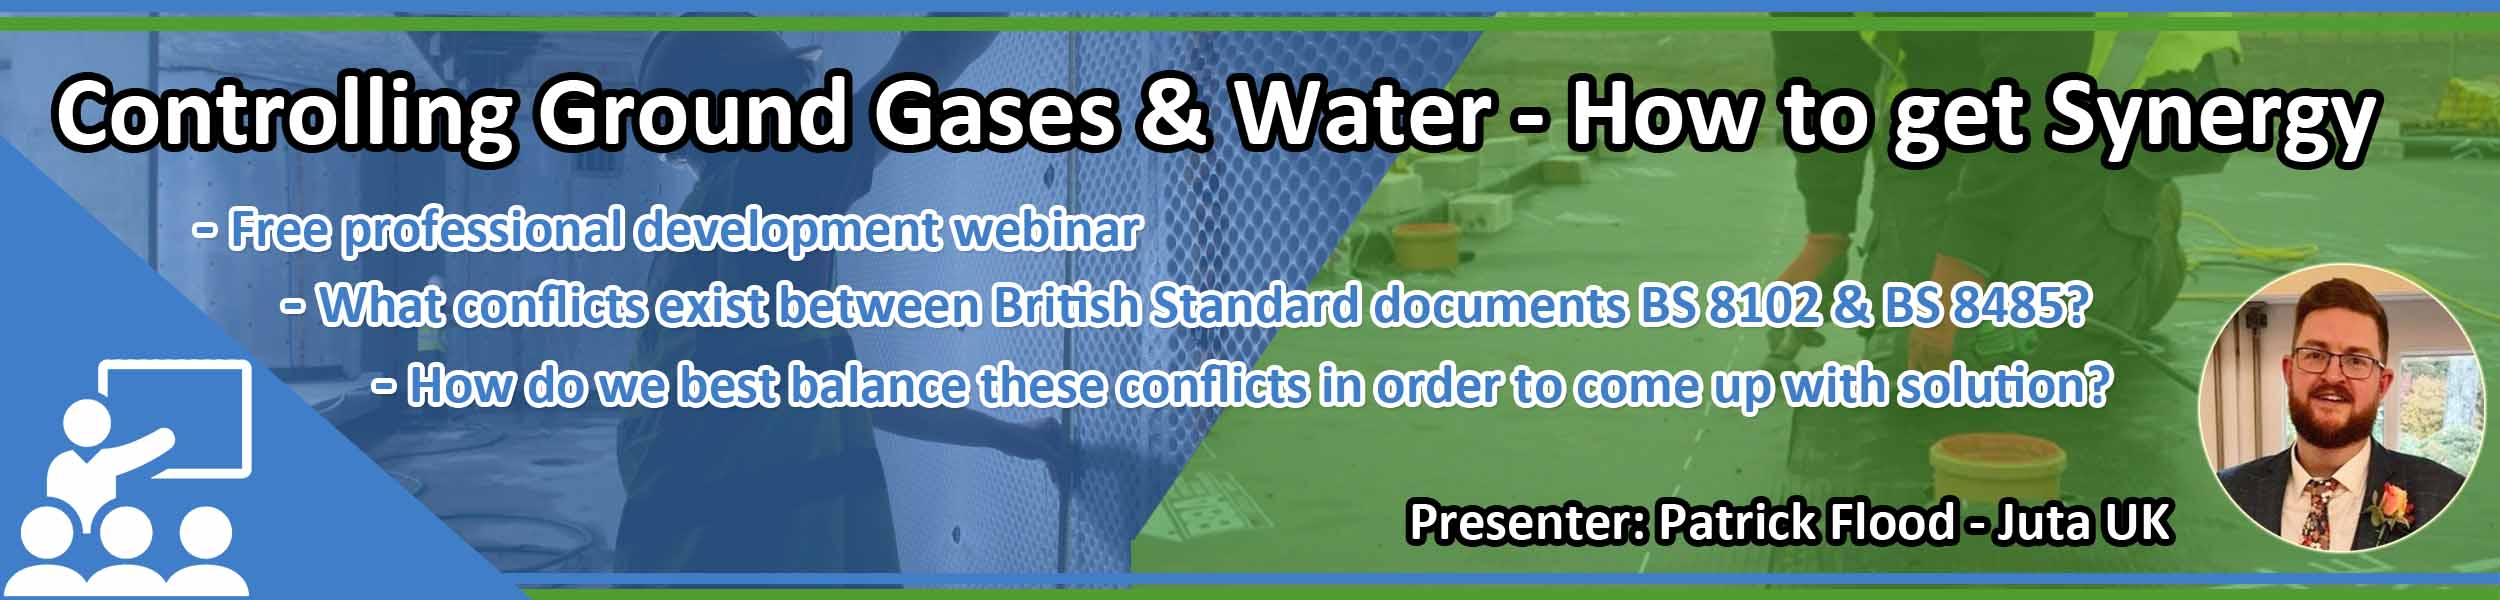 Webinar: Controlling Ground Gases & Water - how to get synergy